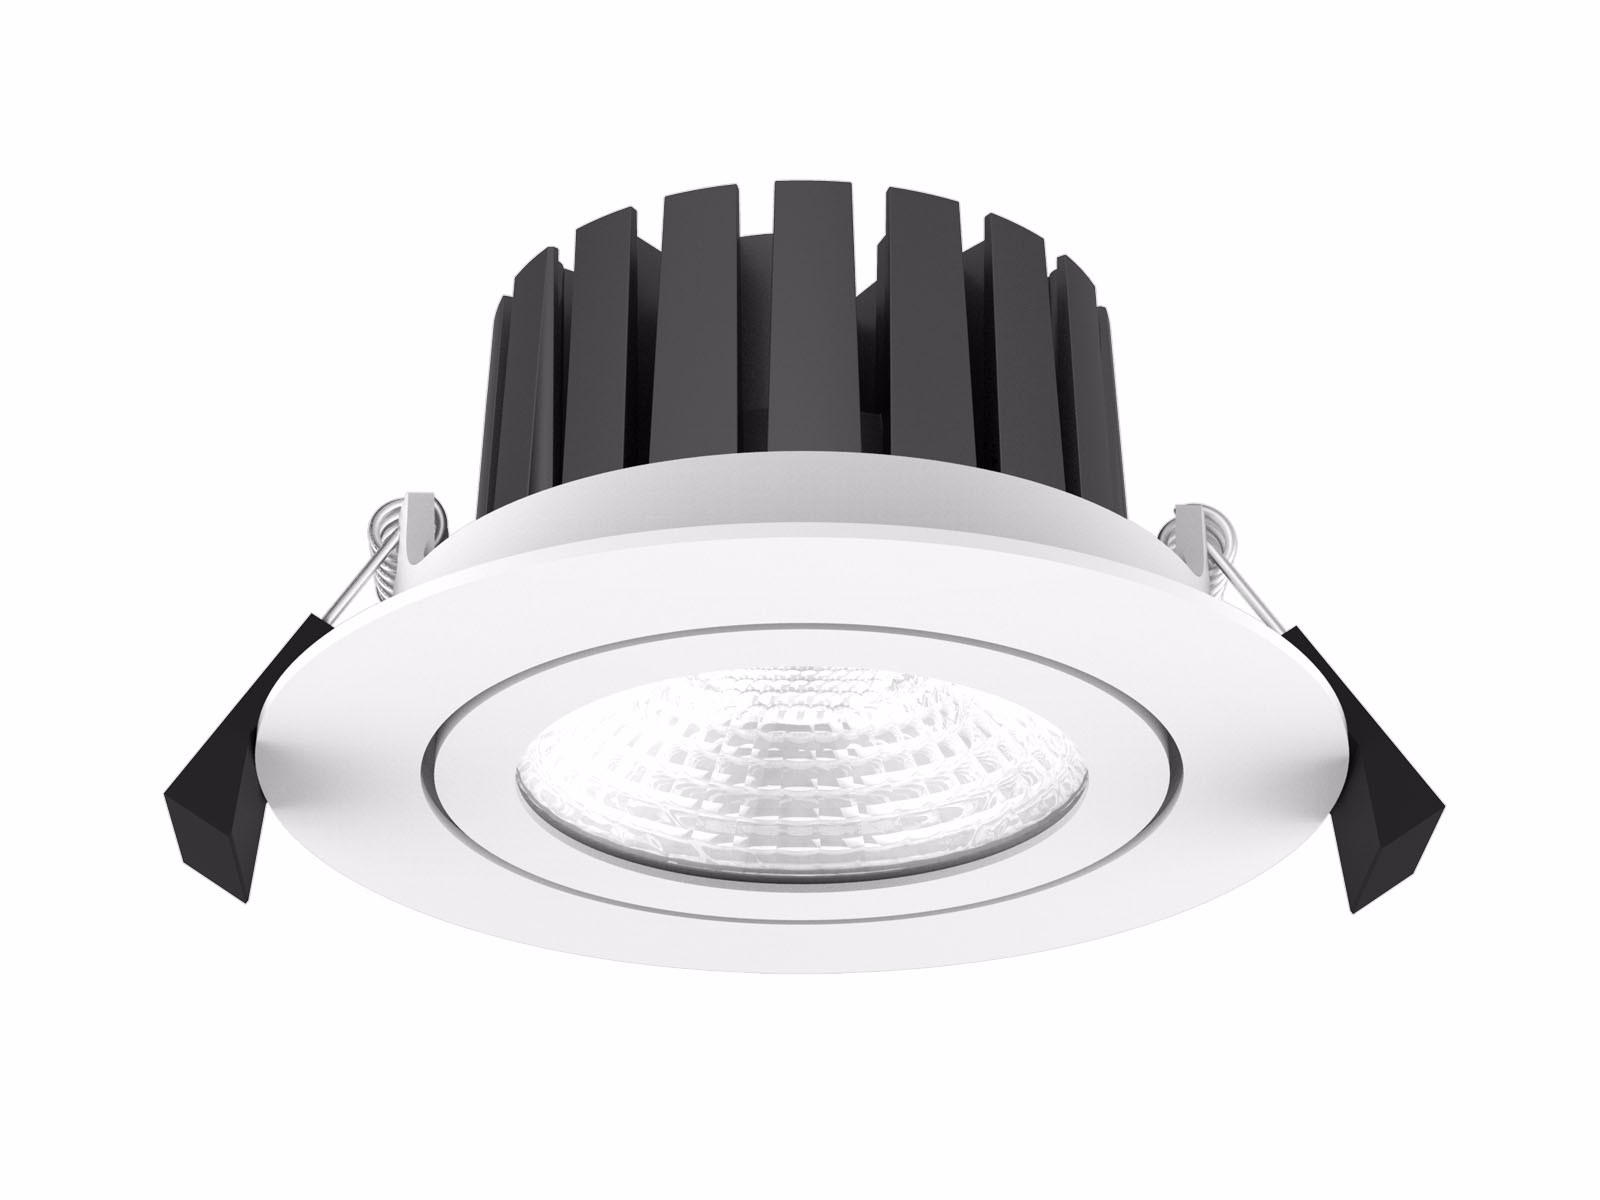 CL102 LED Downlight Idea